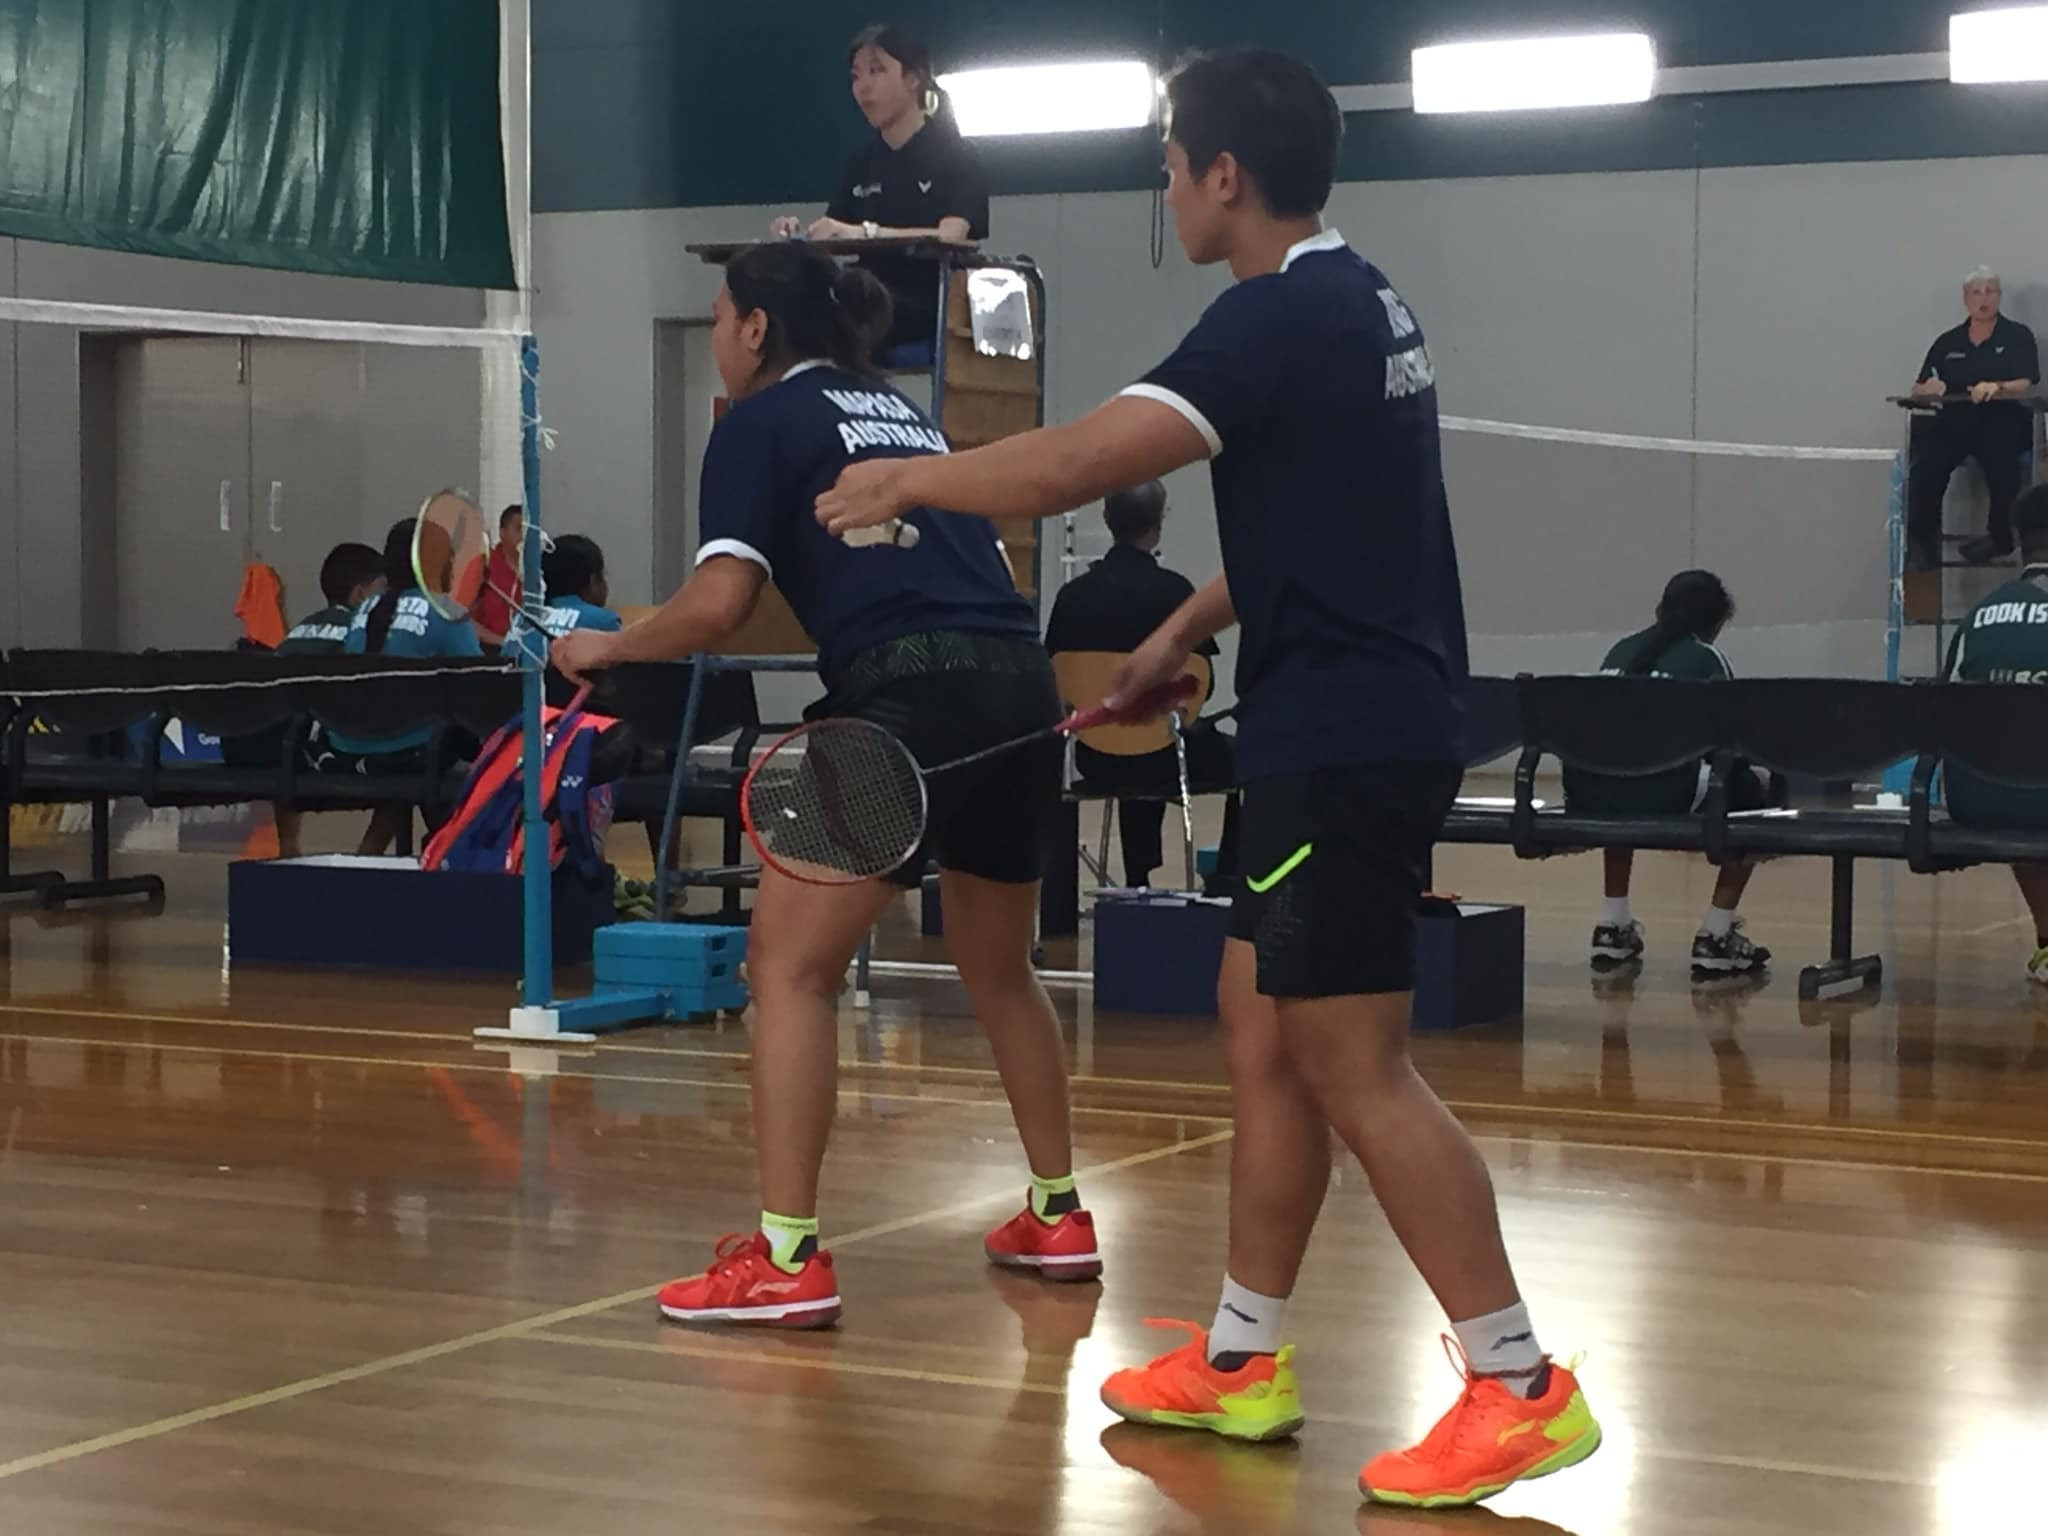 Australia dominate in front of home crowd at Oceania Mixed Team Badminton Championships